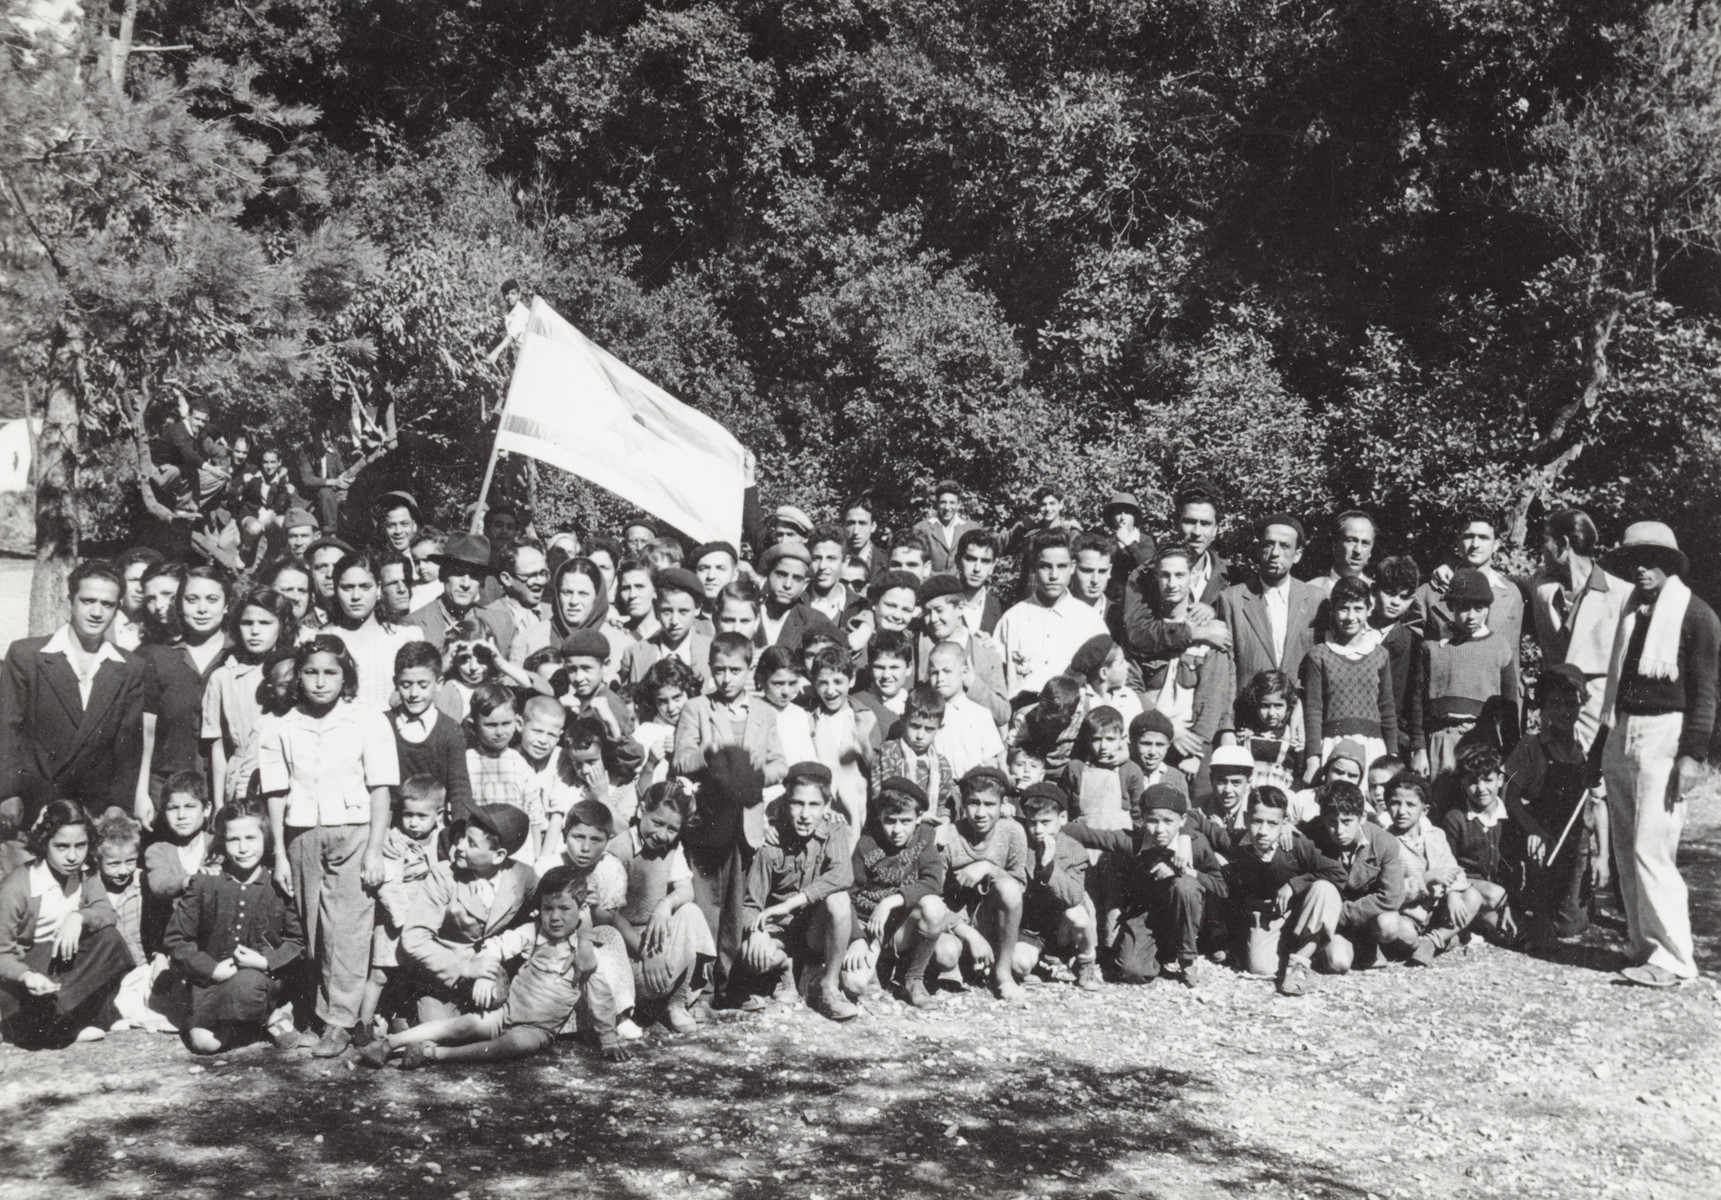 Group portrait of Jewish children in Marseilles waiting to go to Israel.